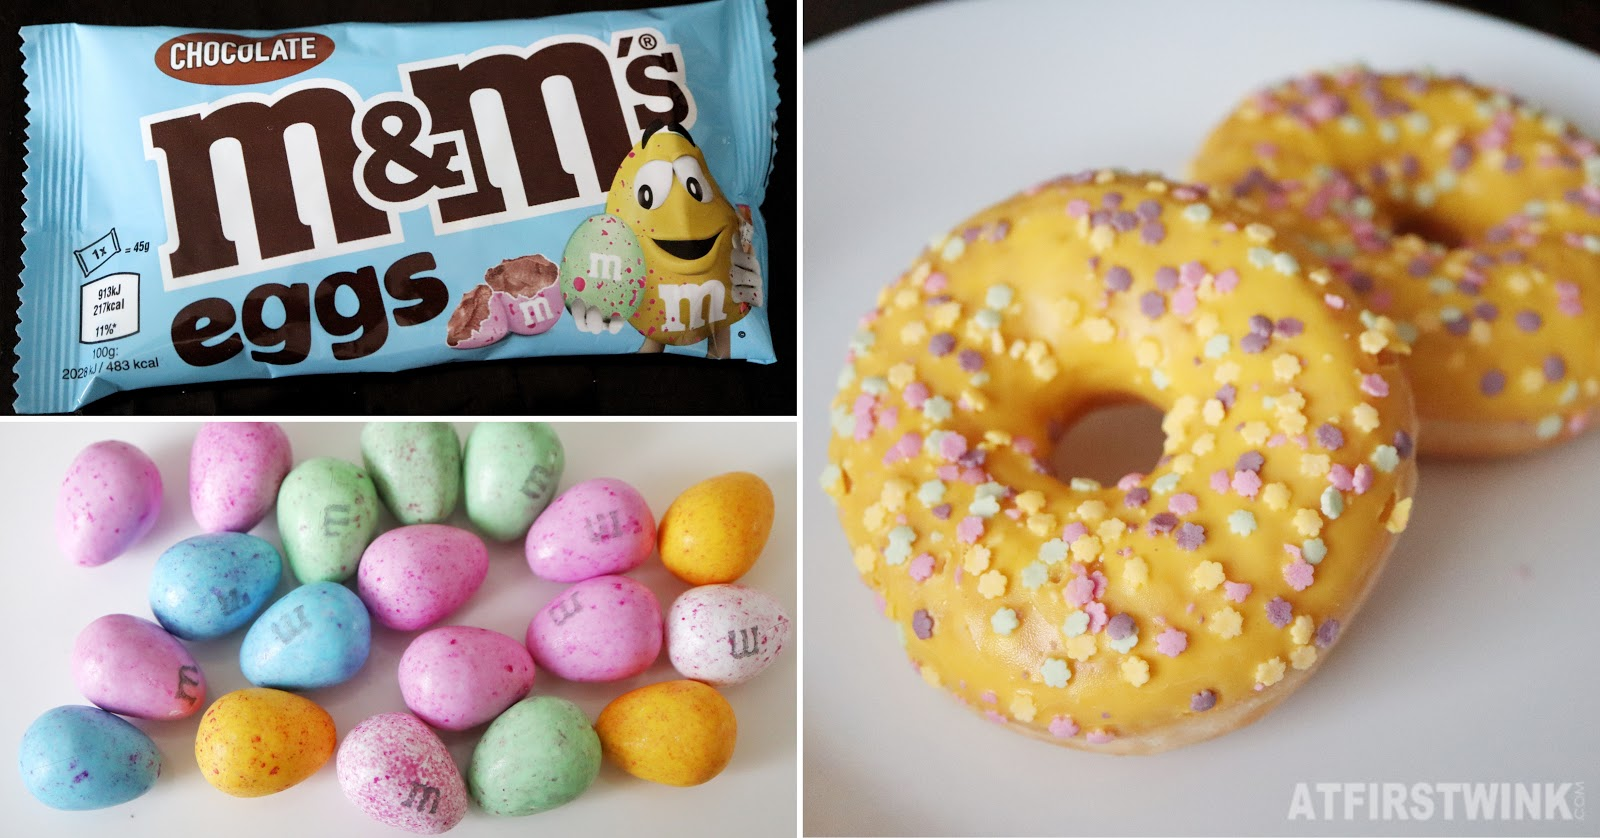 M&Ms speckled easter eggs chocolates Lidl donuts